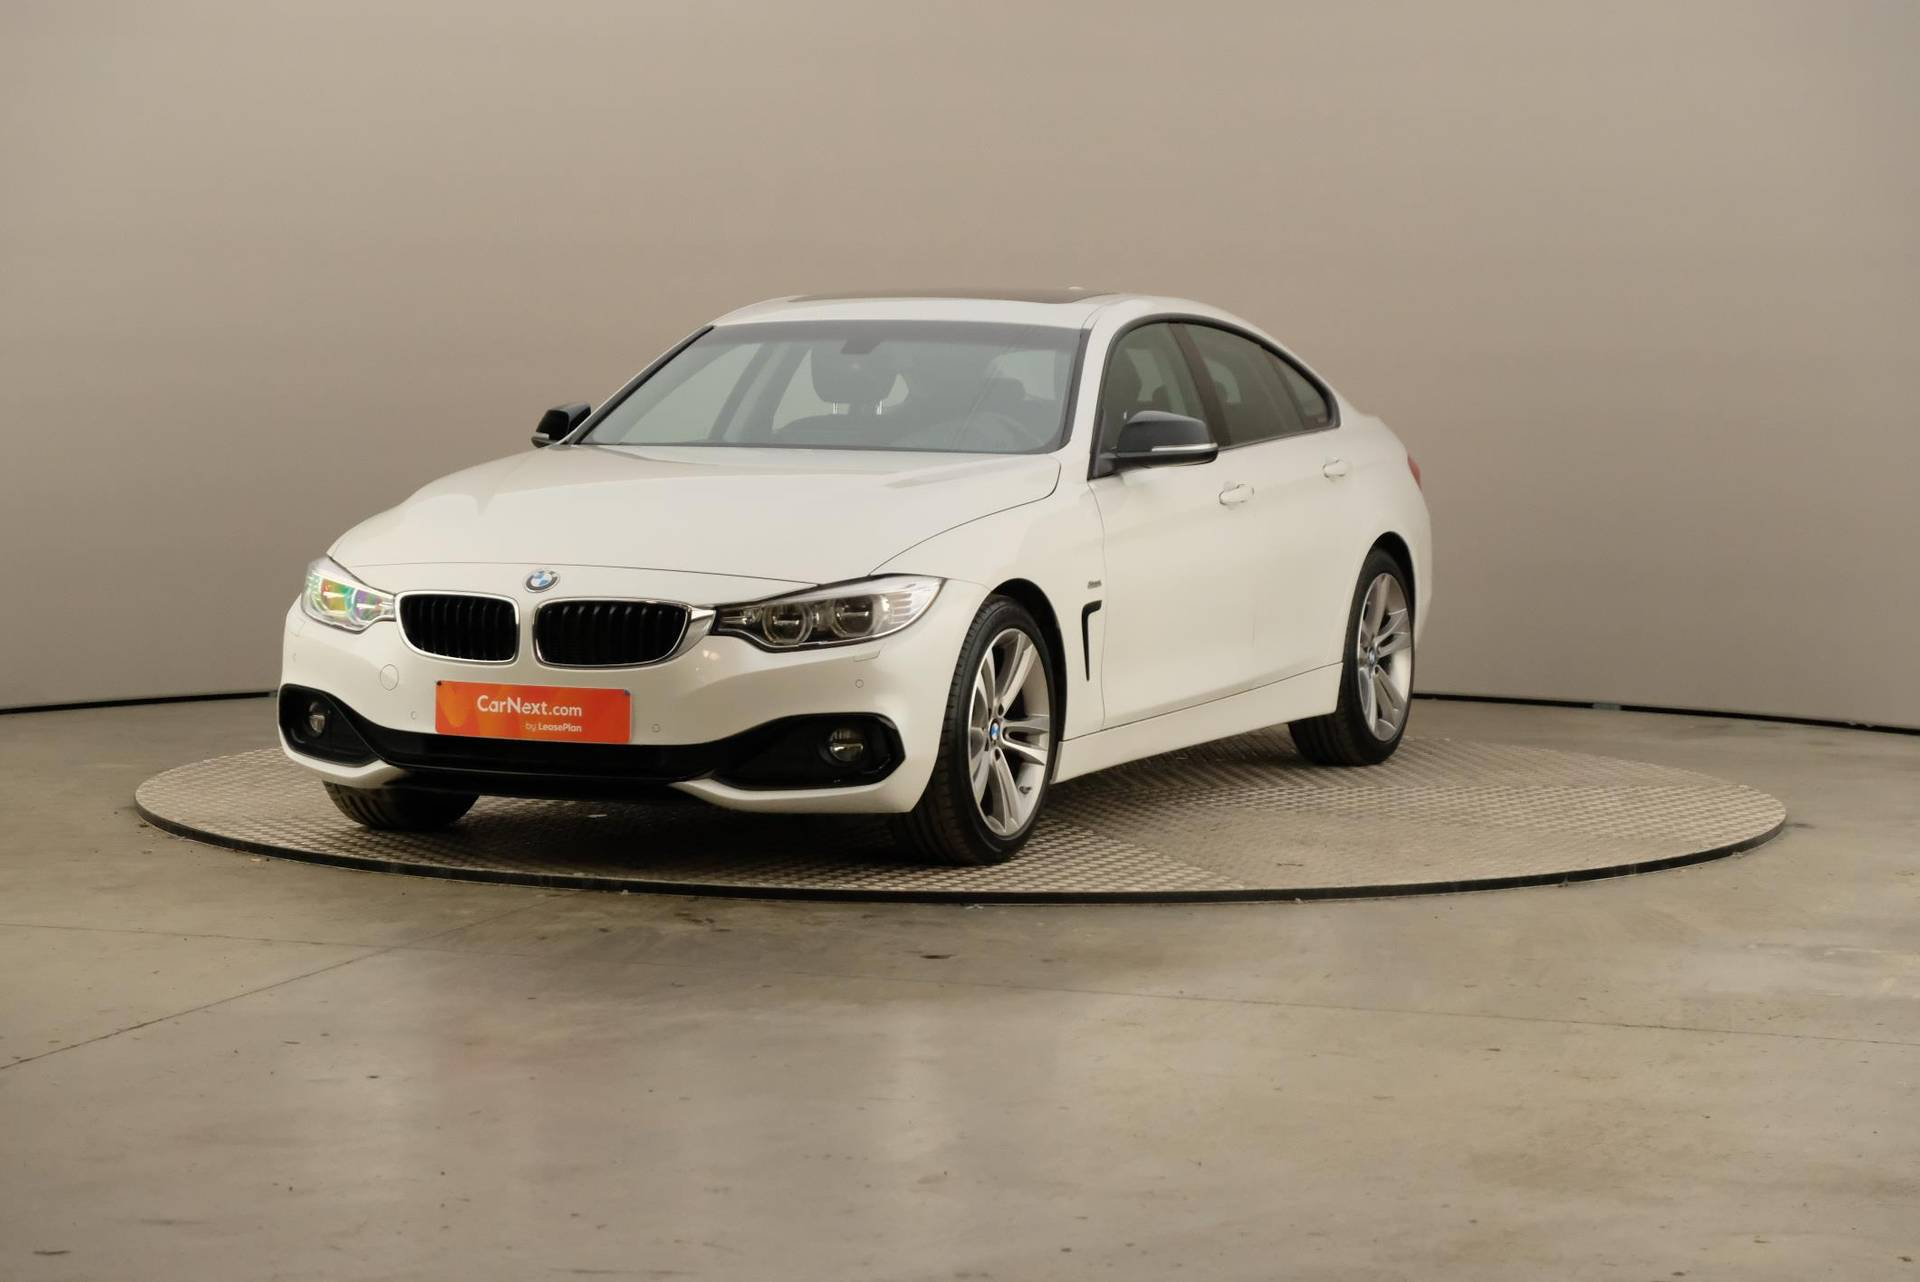 BMW 4 gran coupé 420 dA SPORT LINE LED GPS PROF PDC OPEN DAK/TO HARMAN KARDON, 360-image34